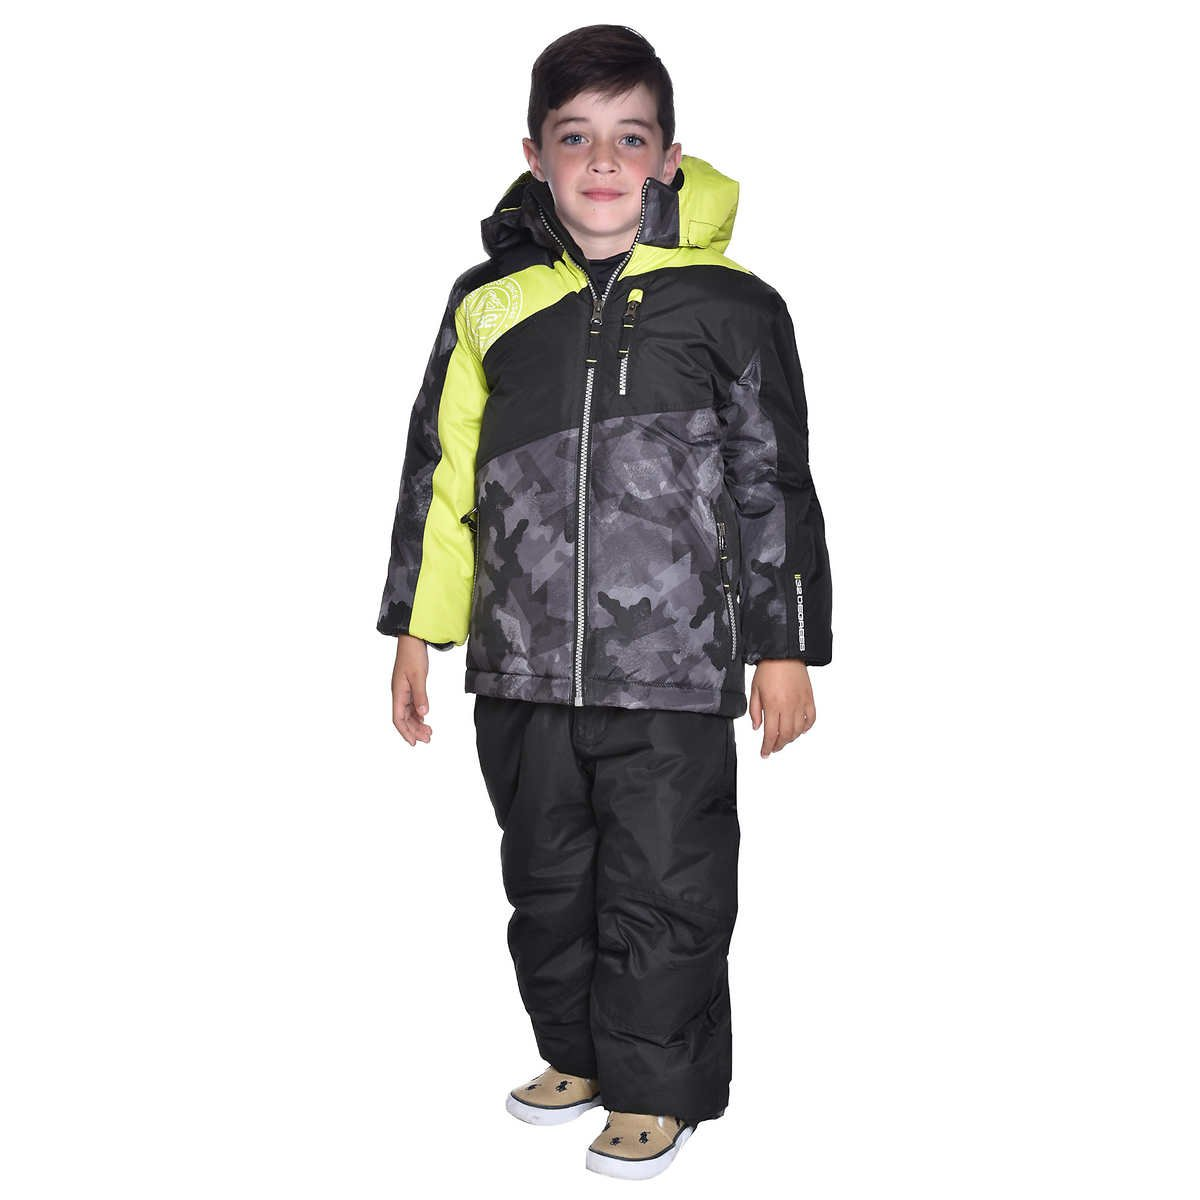 32 Degrees 2 Piece Snow Bib and Jacket Set for Boys